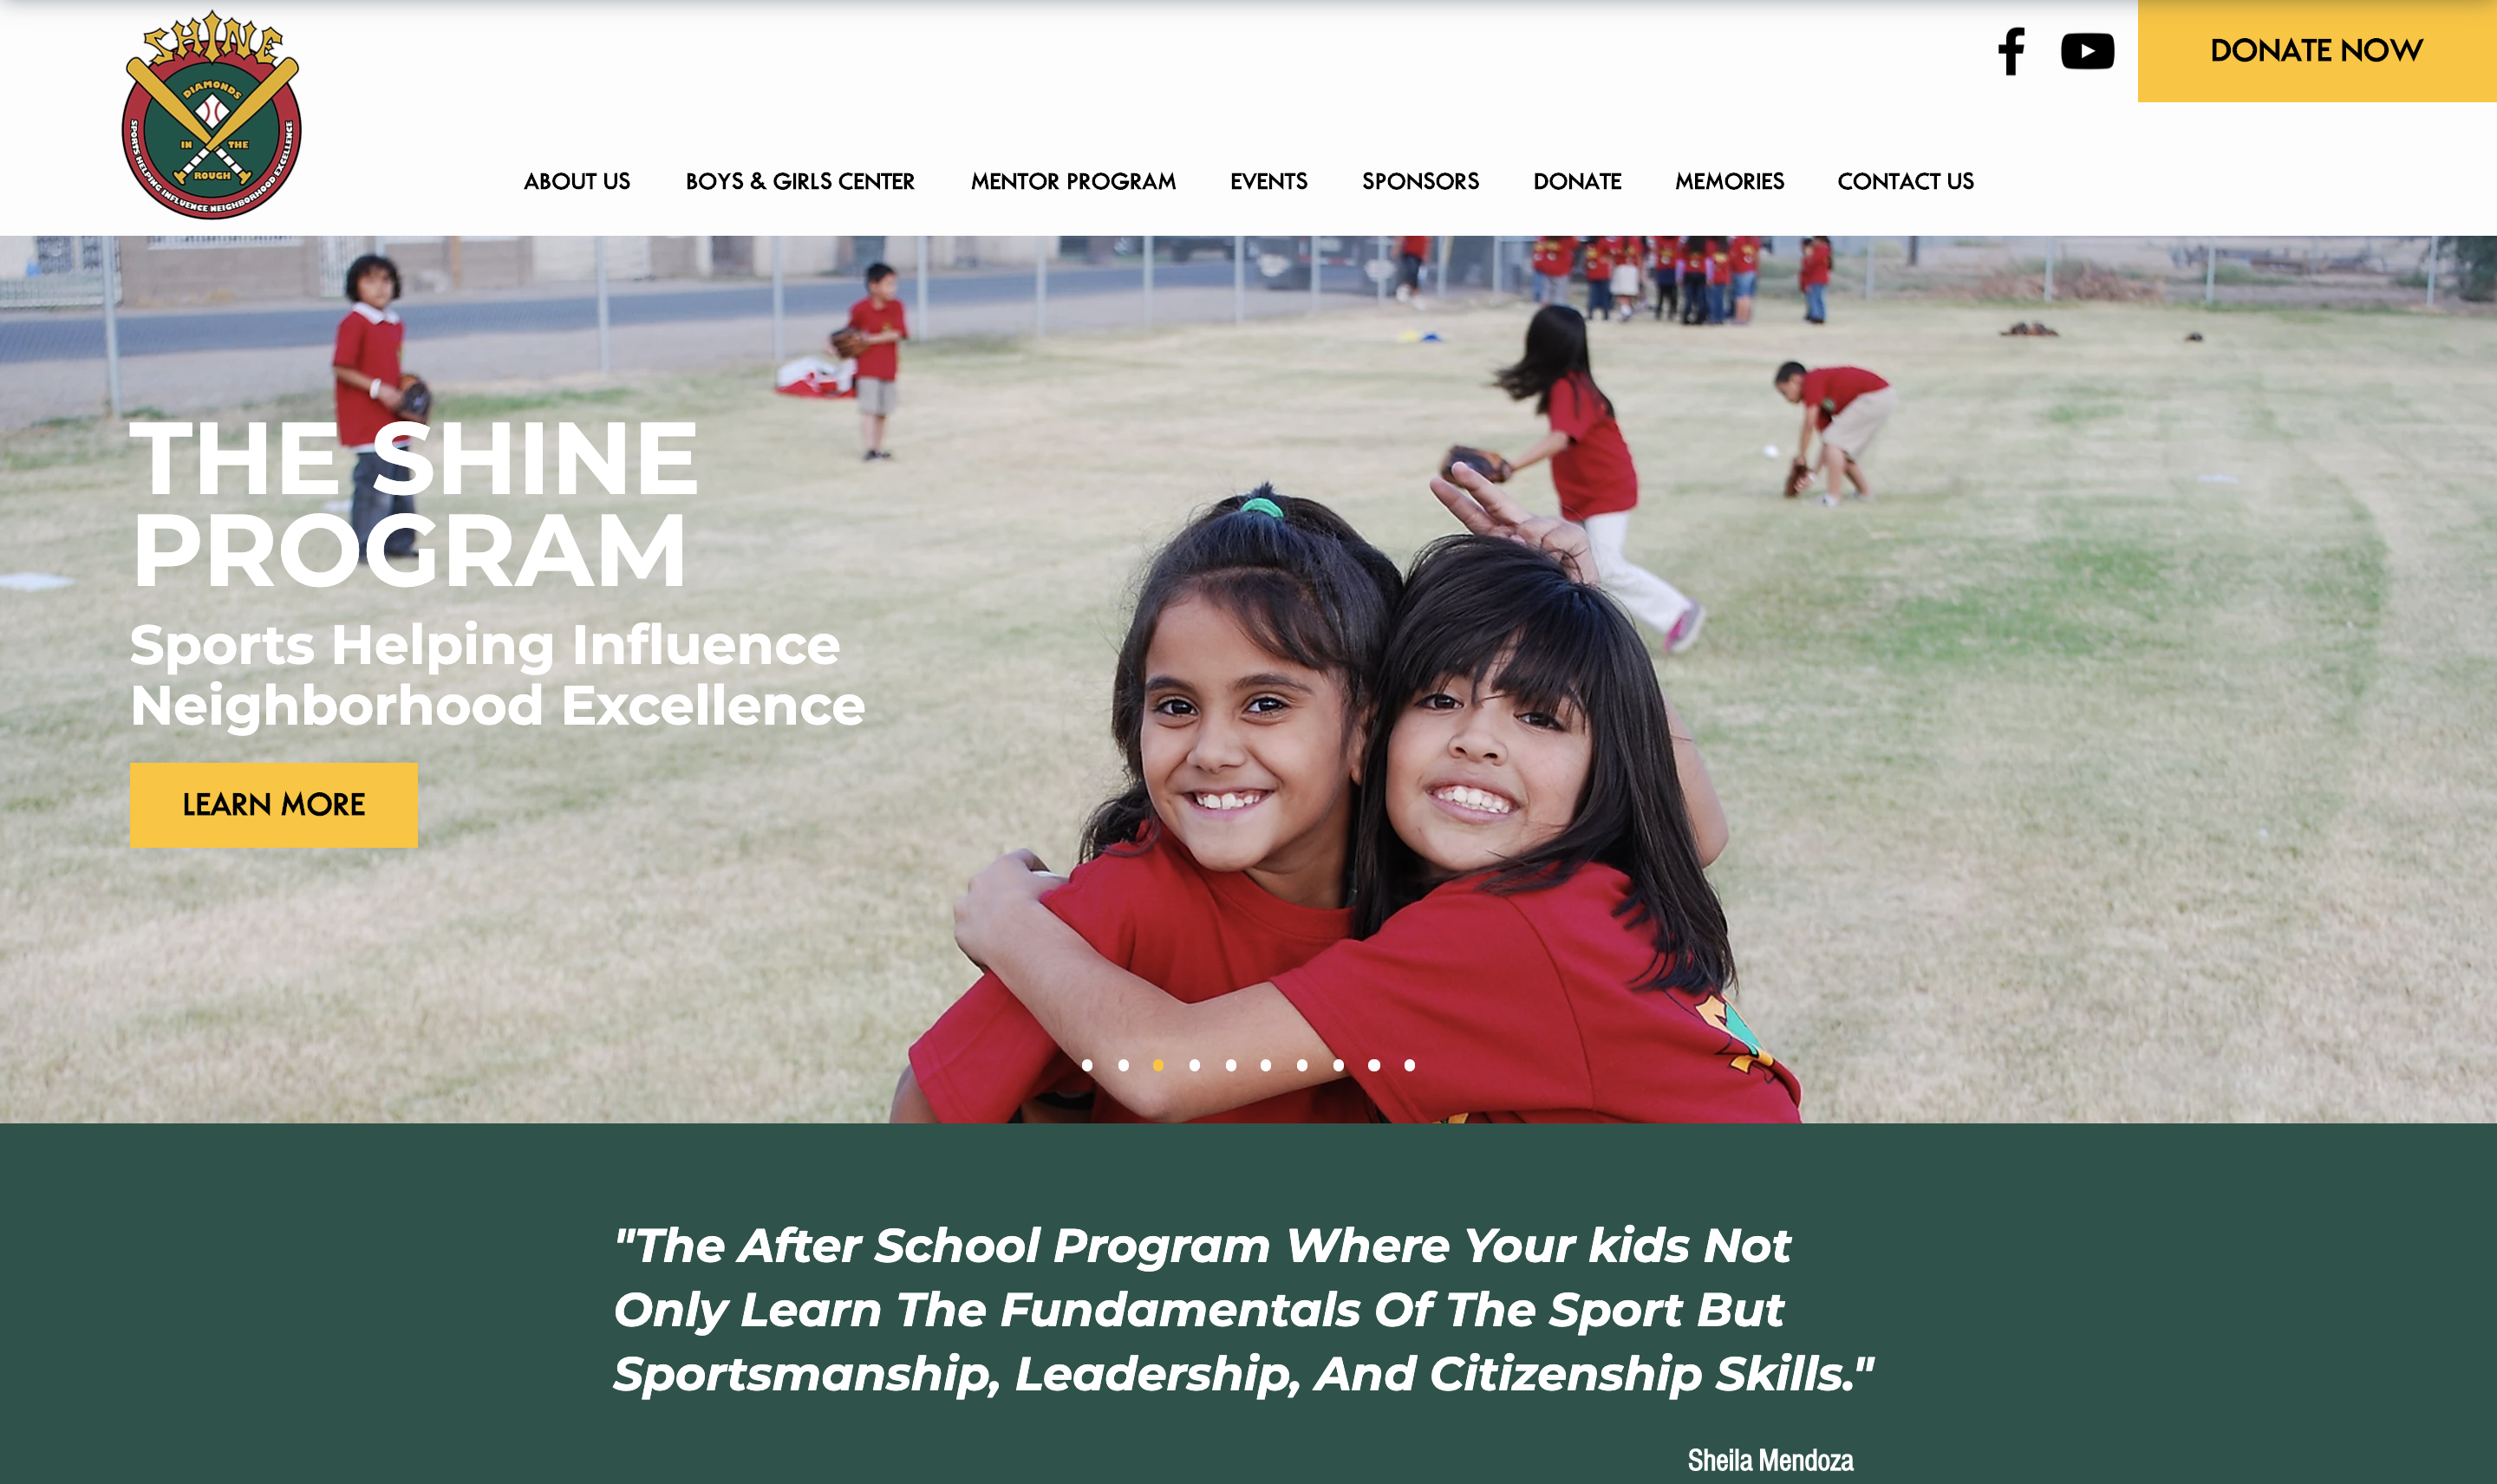 The SHINE Program